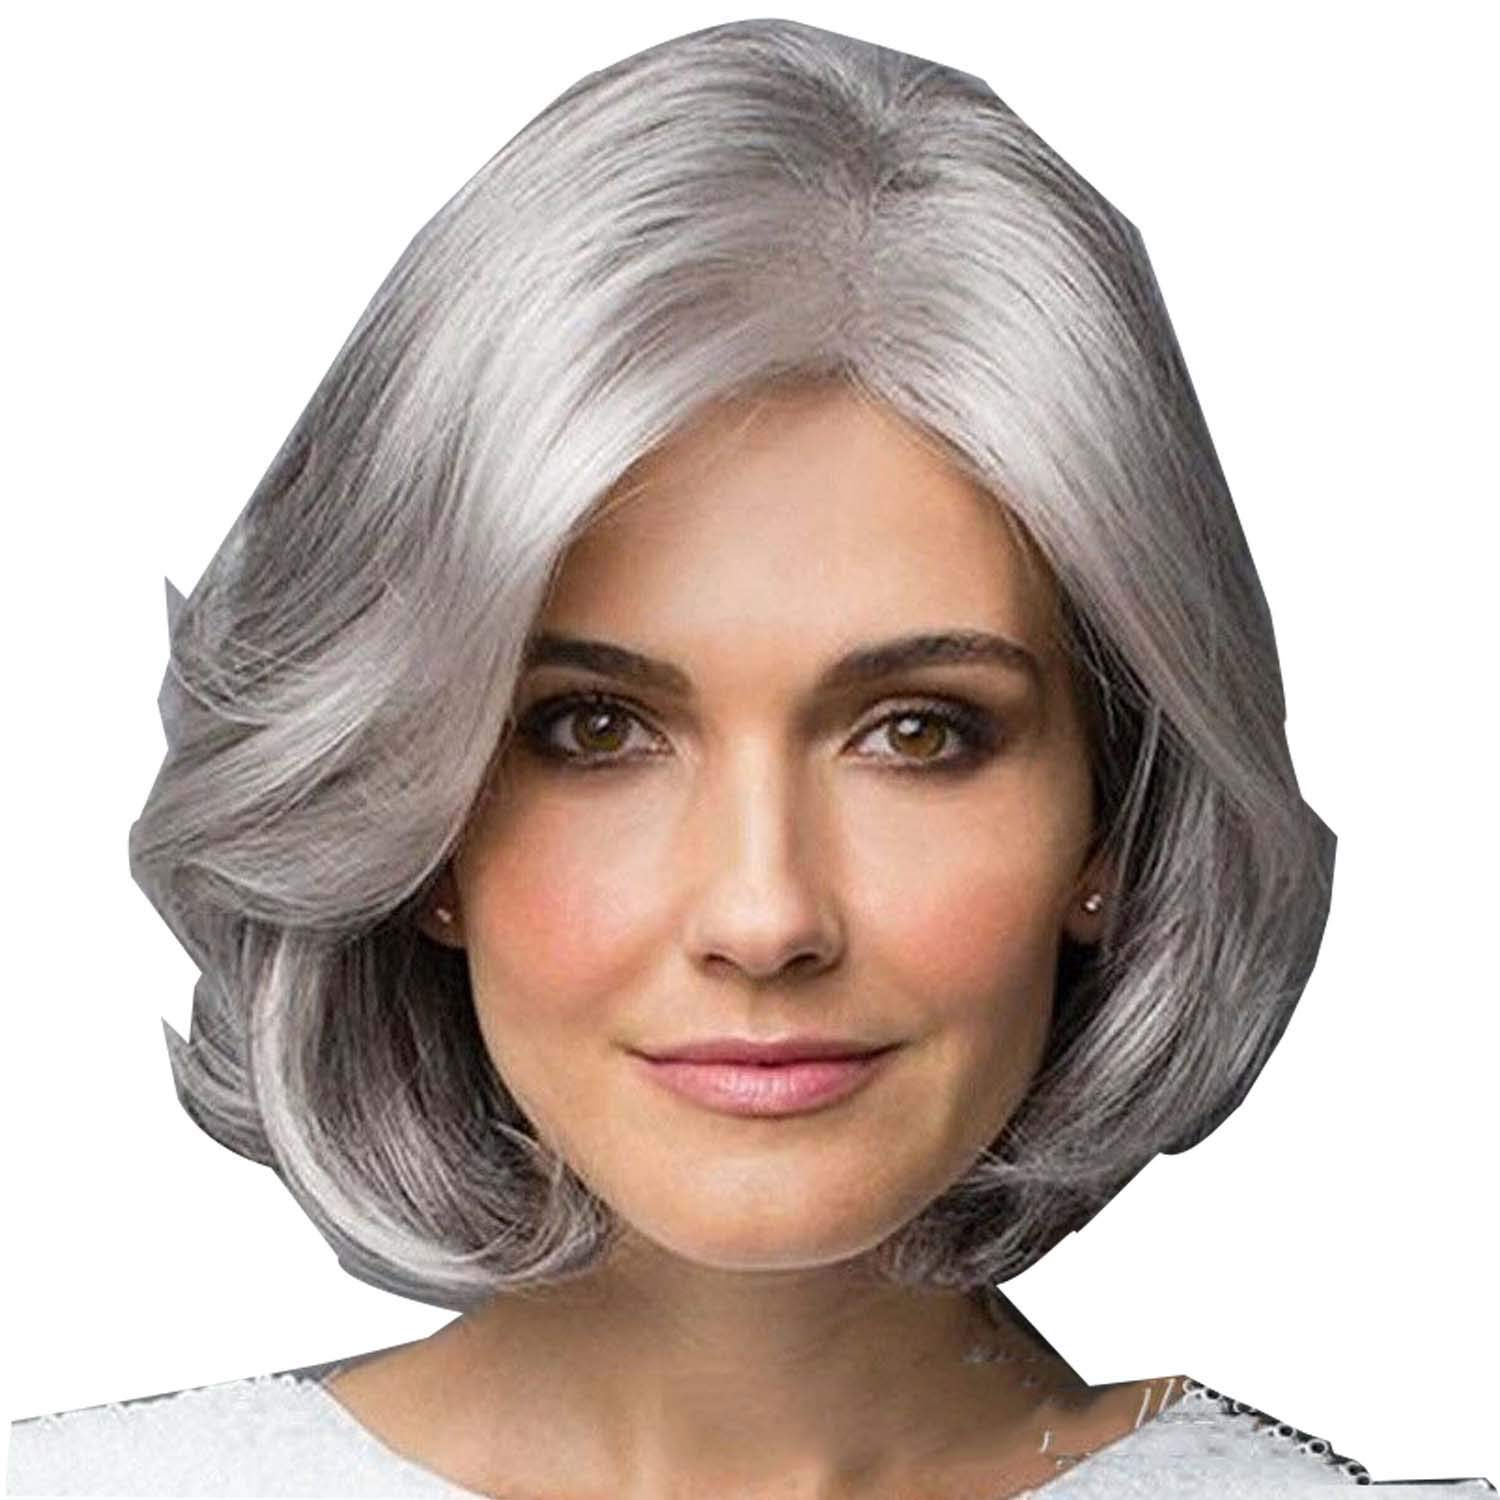 Upinva Medium Finger Wave Spiral Curls Older Women Short Gray Messy Curly Synthetic Hair Heat Resistant Elegant Full Ombre Wig Natural As Real Seniors Hair Wigs for Daily Use,Silver Grey